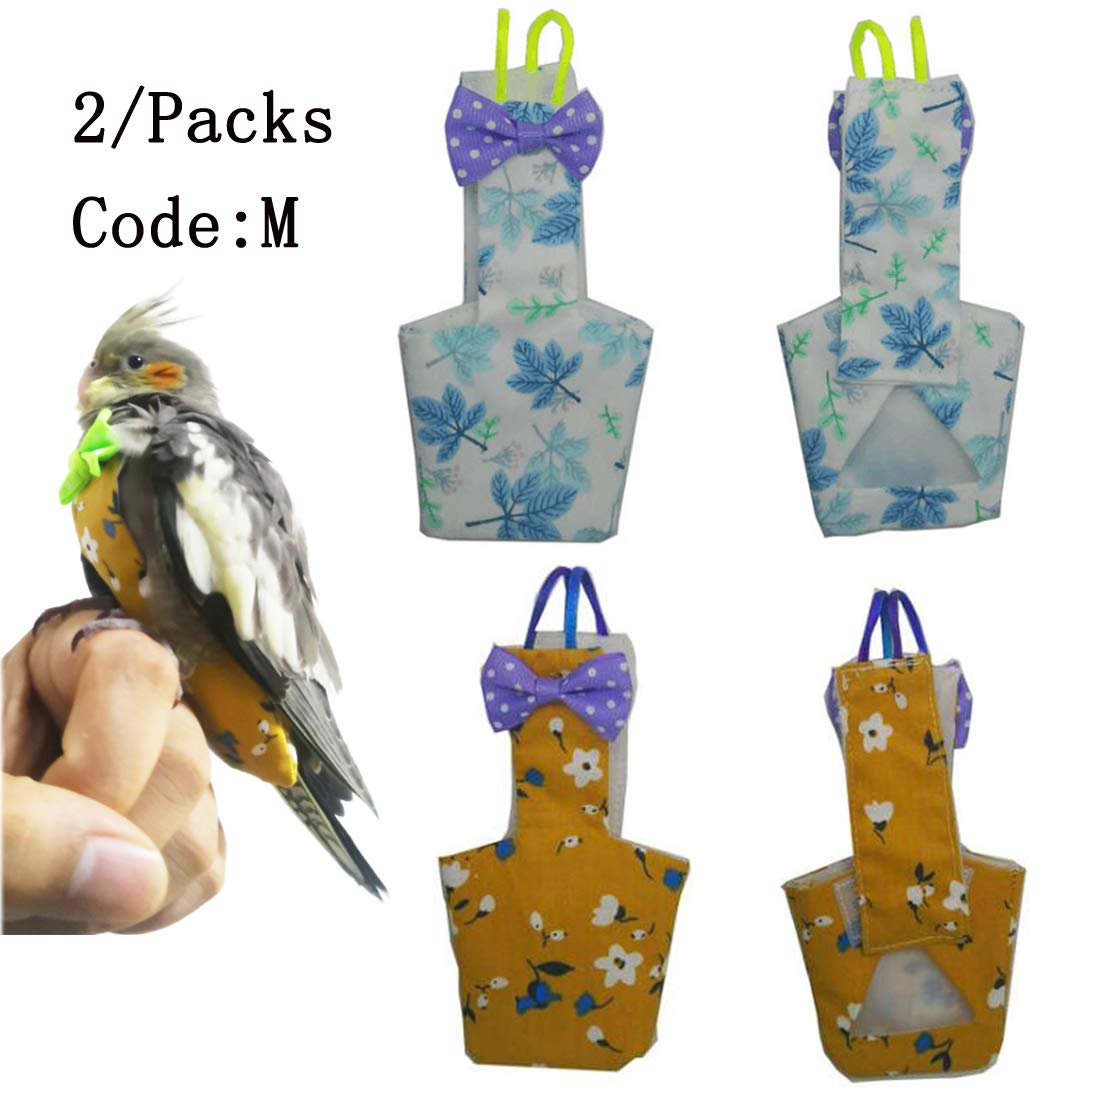 star sound source Waterproof Washable Reusable Bird Parrot Diaper Flight Suit Nappy,Soft Pet Pee Pad Suitable for Parrot Macaw, African Grey Budgie Parakeet, Cockatoos